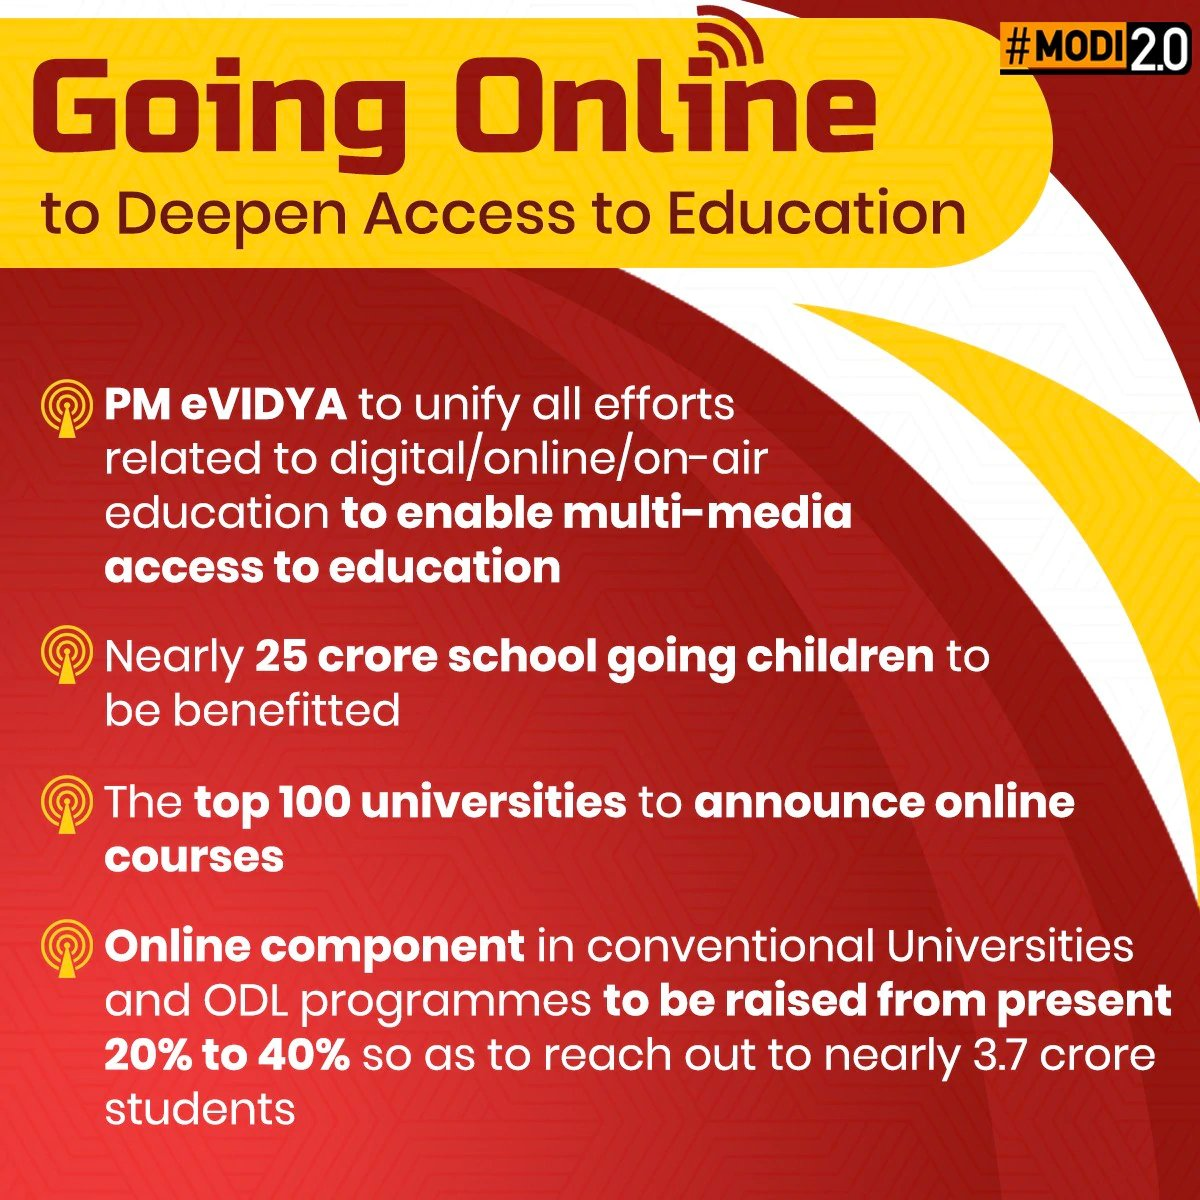 A new paradigm of learning has been announced within the first year of NaMo 2.0. Focus on online learning that integrates technology has been given a push like never before. #Opportunities4Youth<br>http://pic.twitter.com/tG22VXDRqY